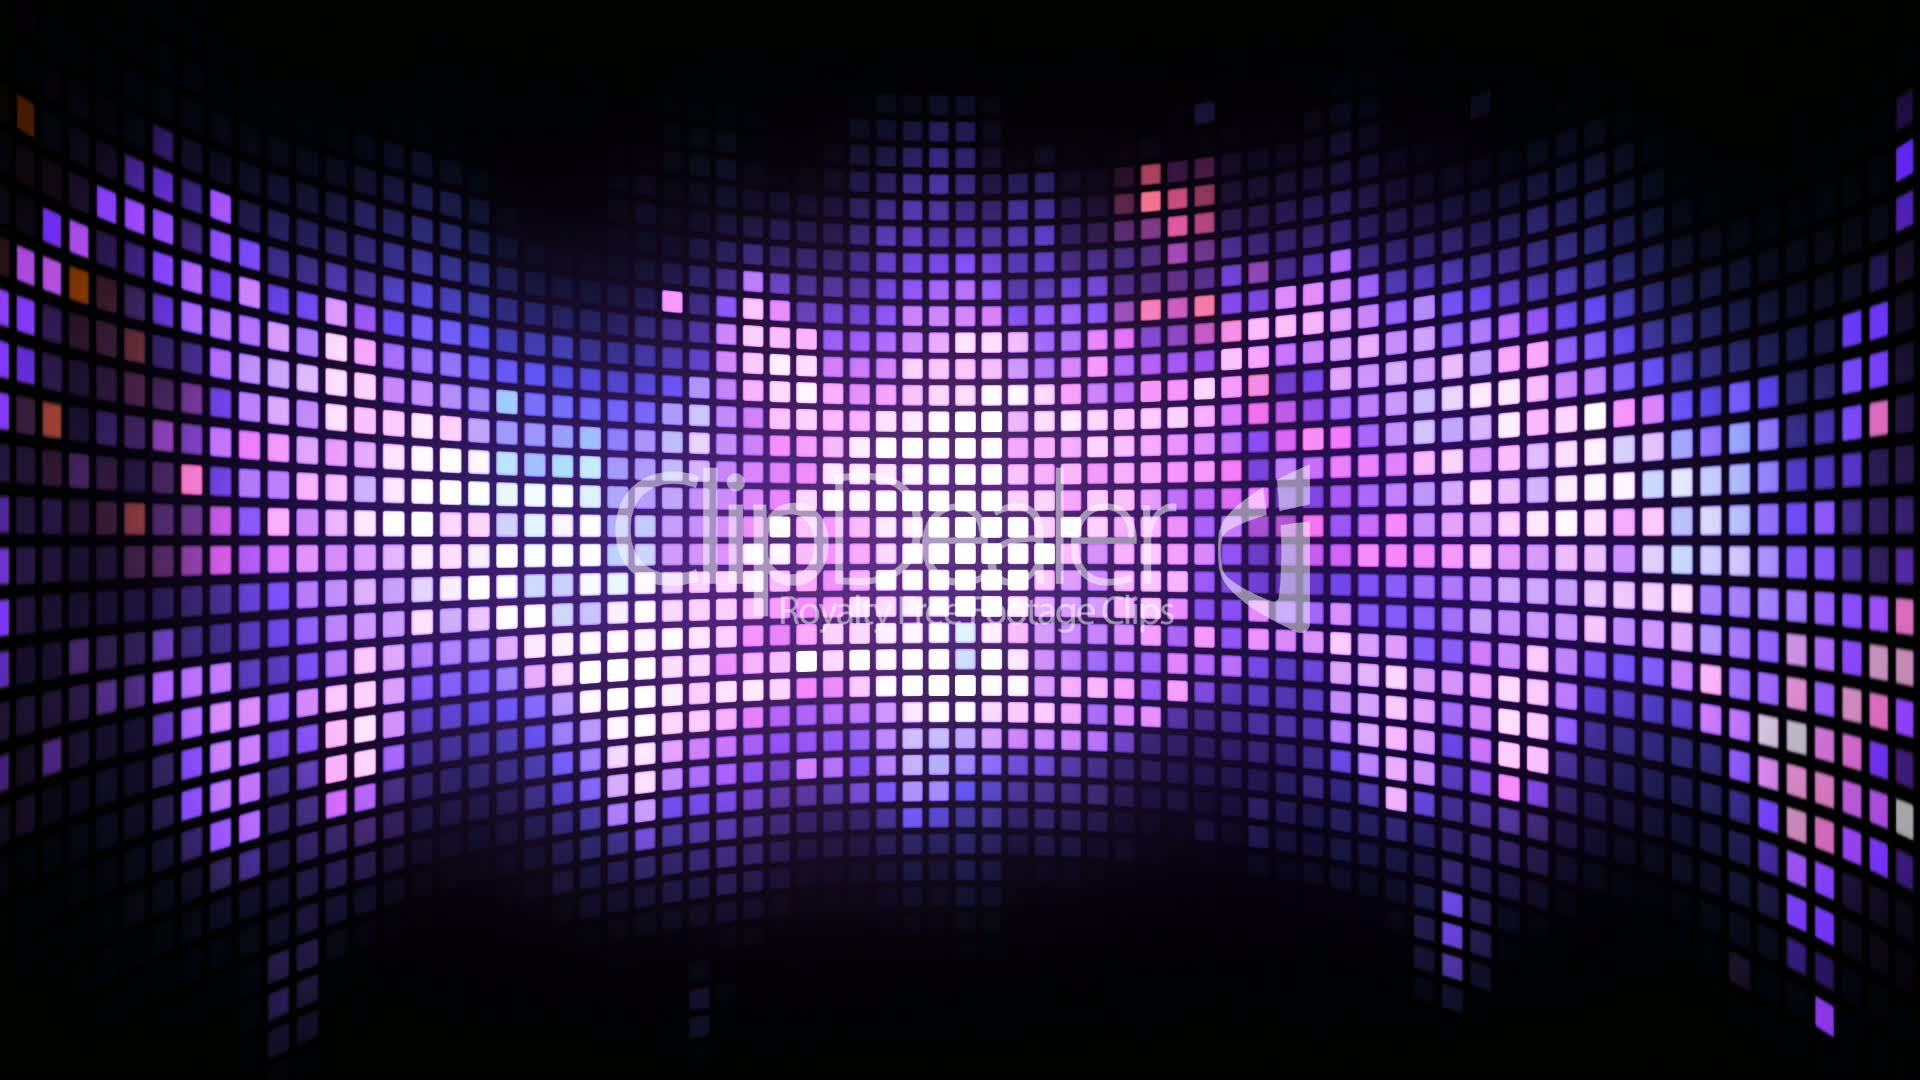 Curved Dance Light Box Background Royalty Free Video And